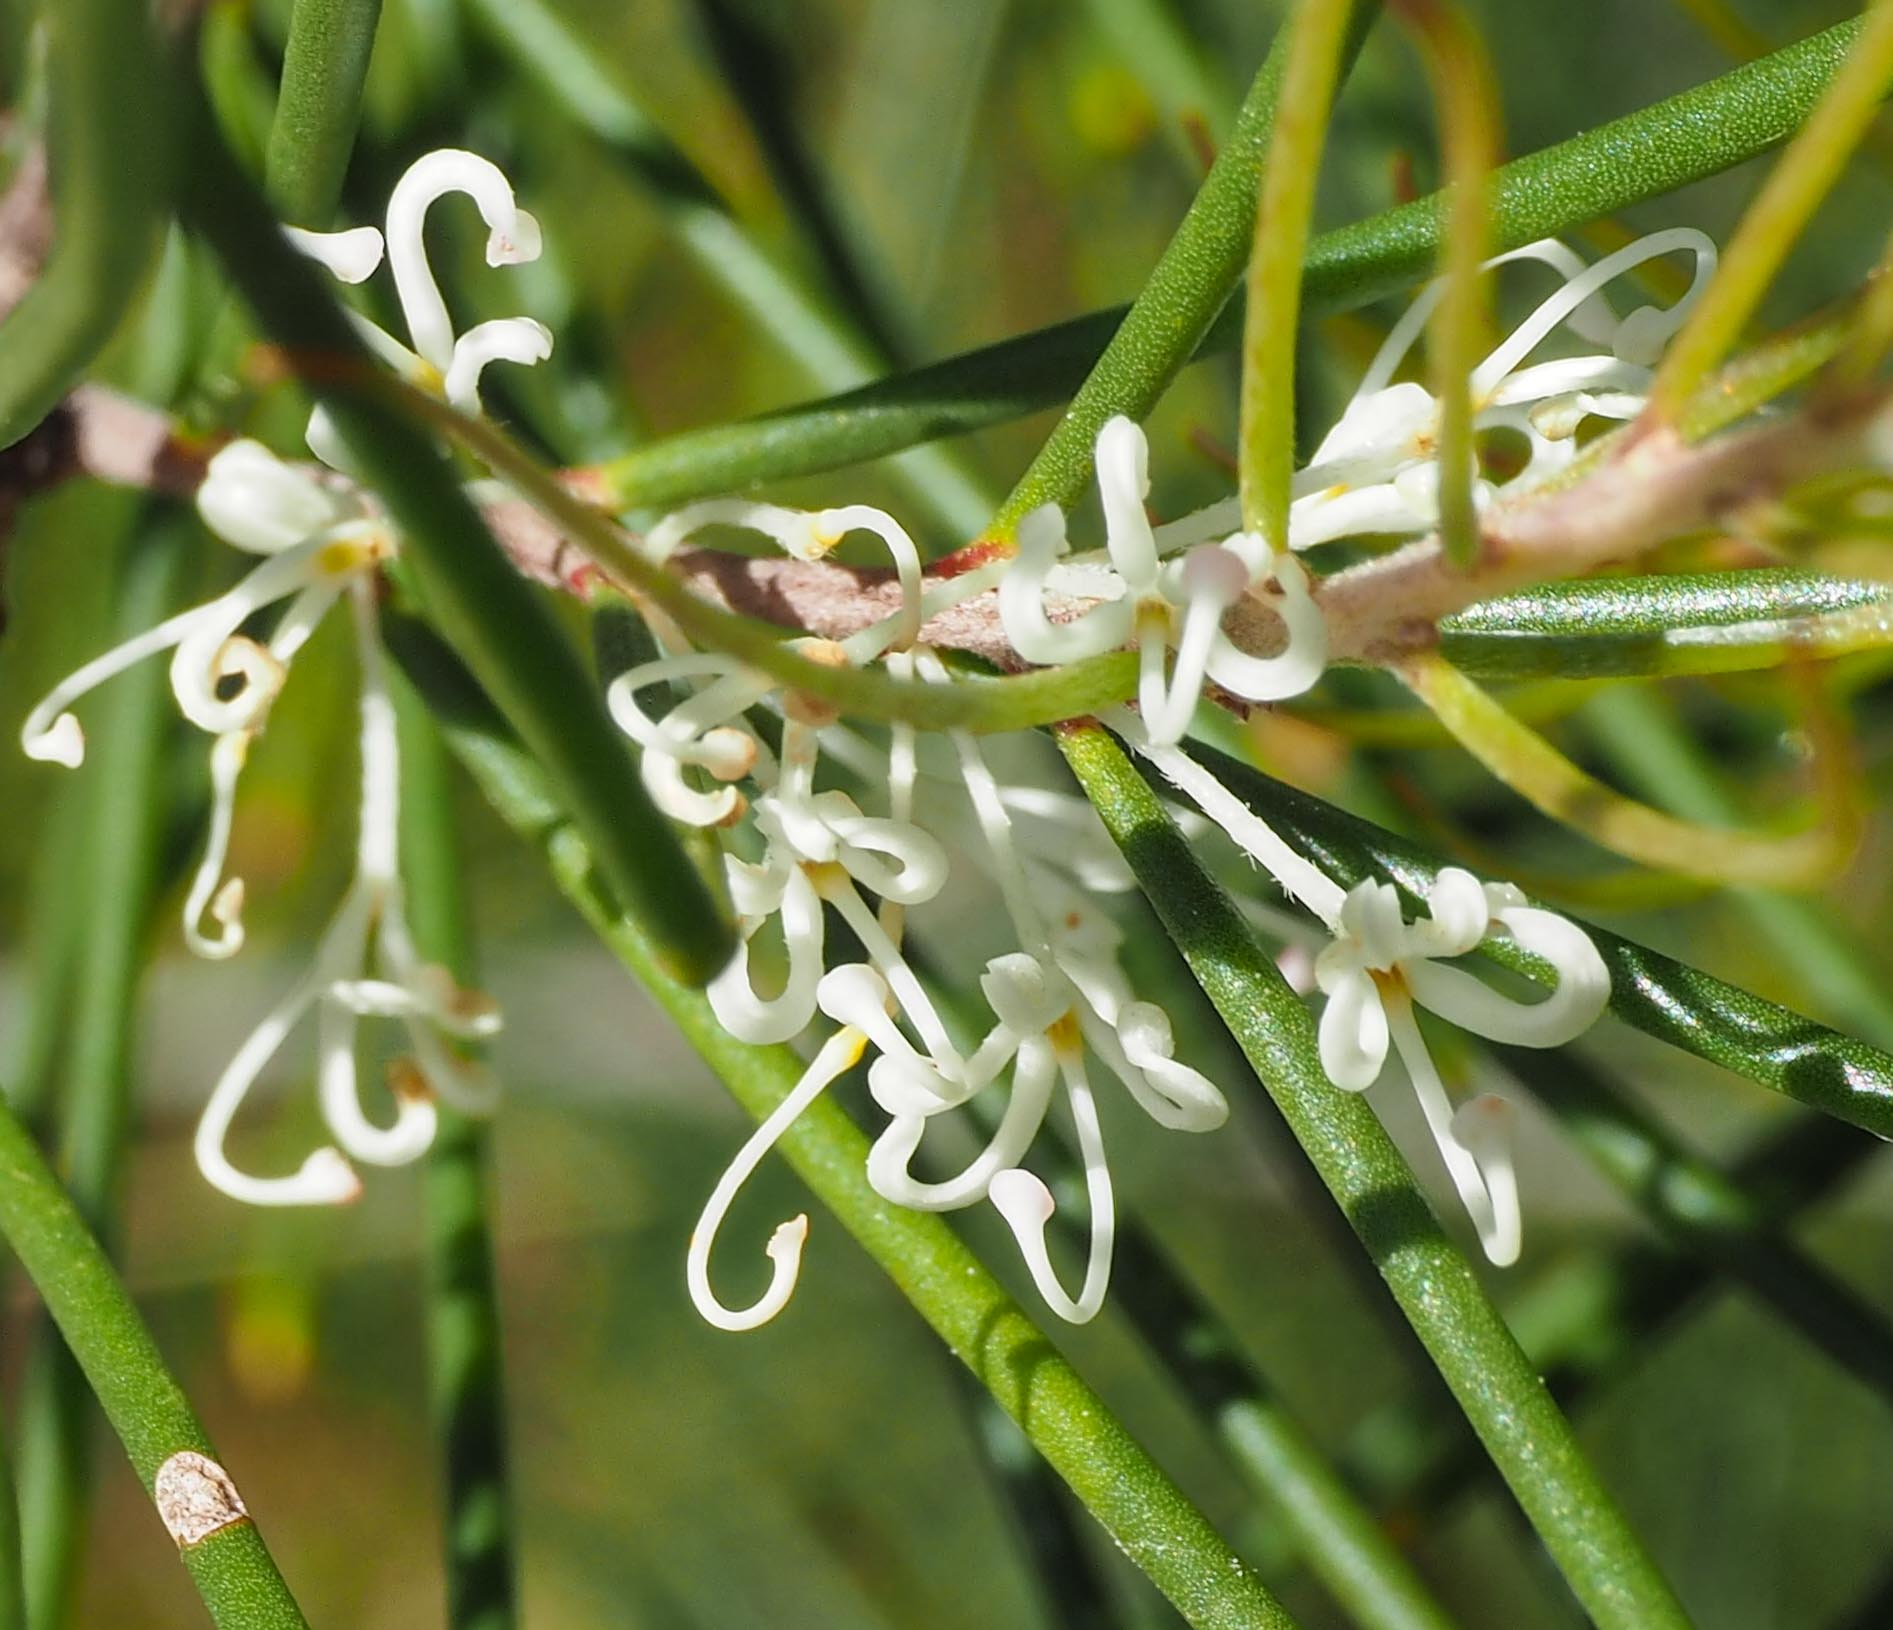 Hakea macreana  at Wonboyn, NSW (Image: Kerri-Lee Harris)